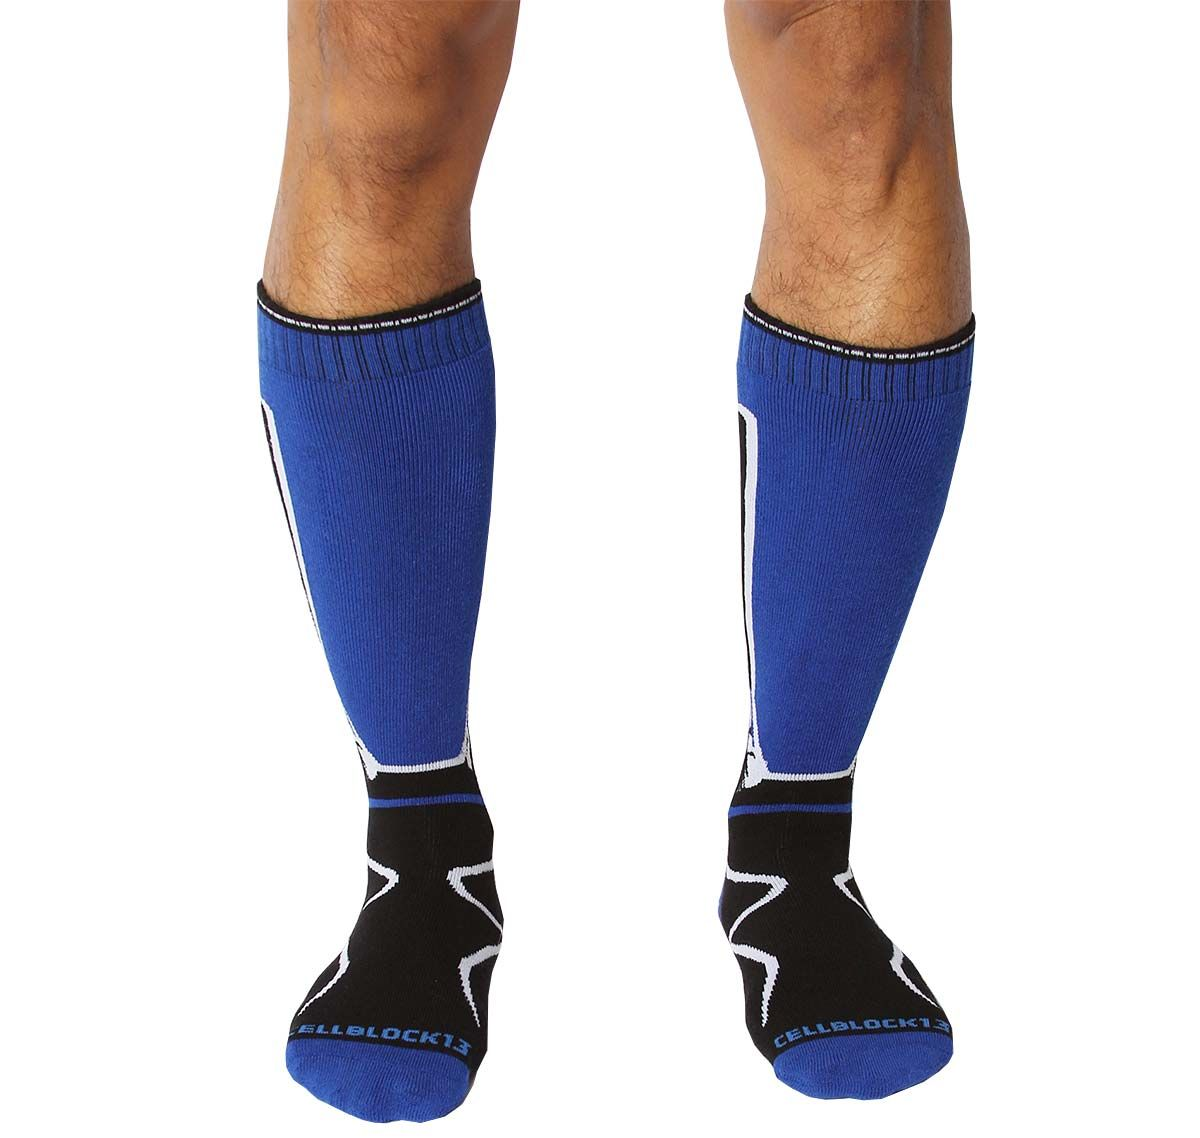 Cellblock 13 Sports socks KENNEL CLUB Mid-Calf SOCK, blue